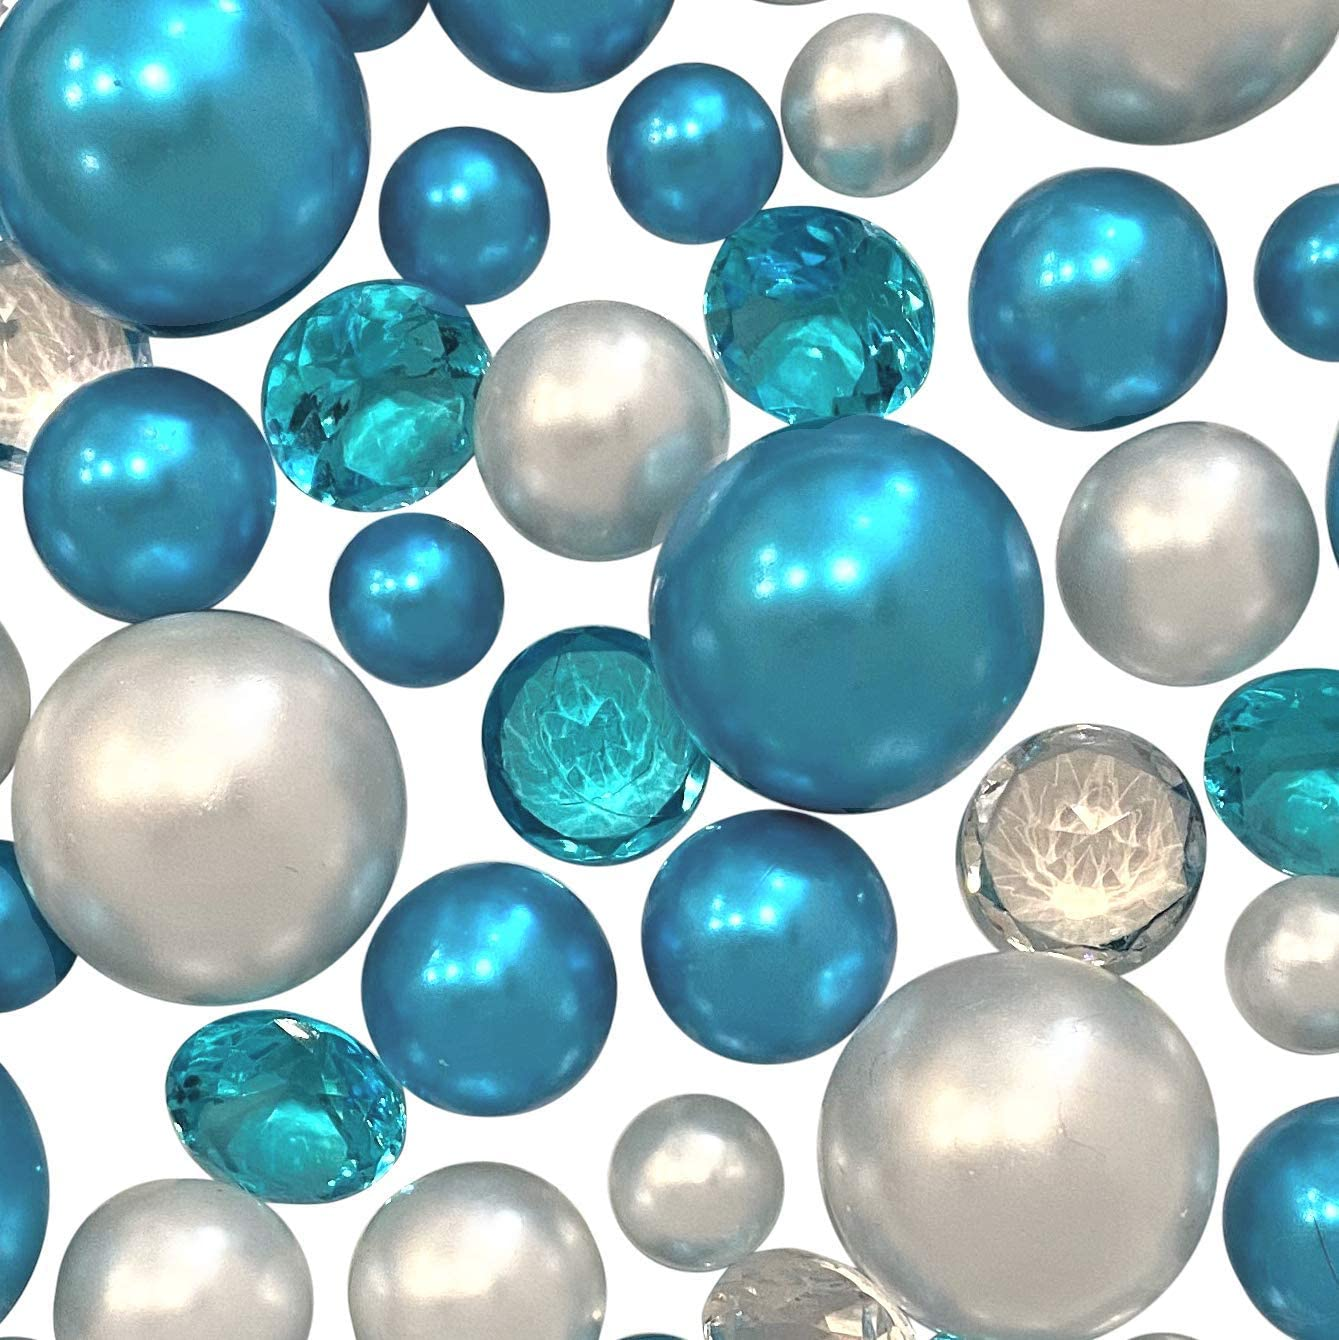 120 Blue Turquoise & White Pearls & Matching Gems - No Hole Jumbo/Assorted Sizes Vase Decorations & Table Scatters - to Float The Pearls Order The Floating Option from Size Menu Below